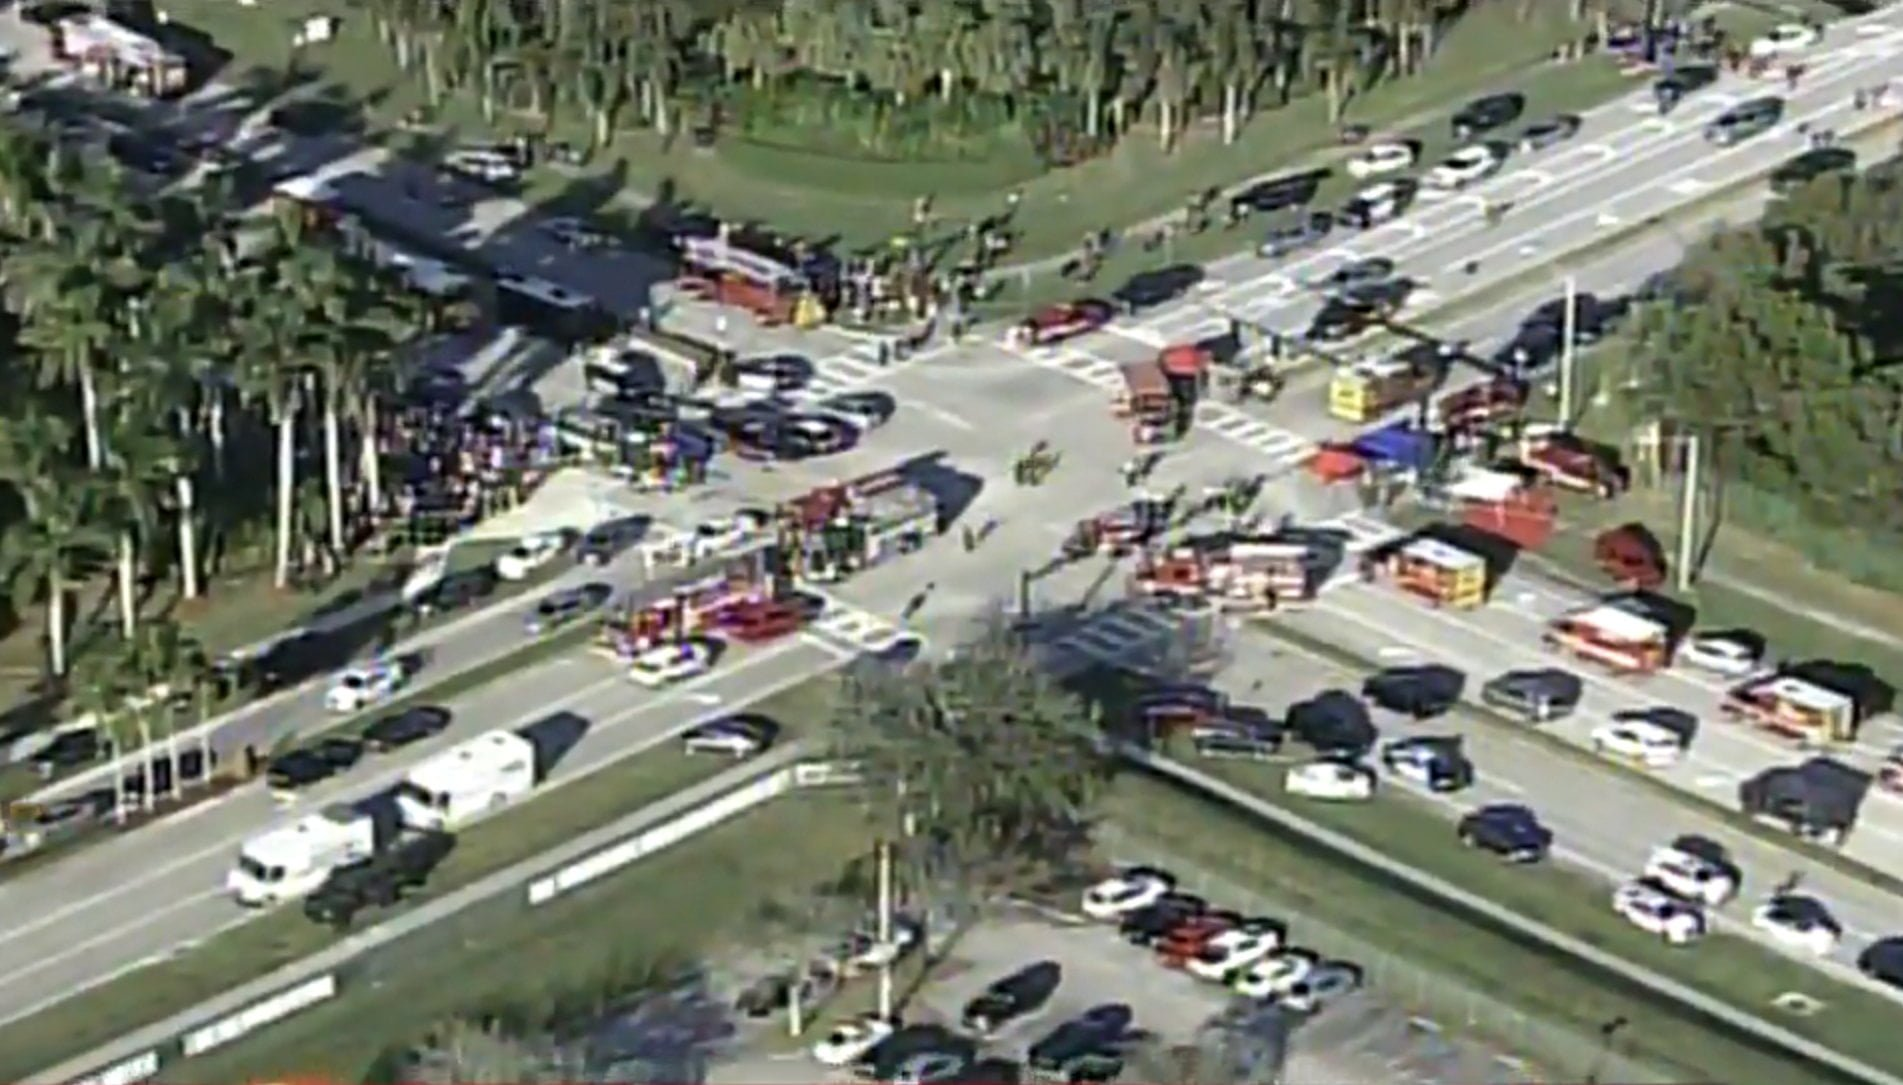 Police and rescue workers attend the scene near Marjory Stoneman Douglas High School following a shooting incident in Parkland